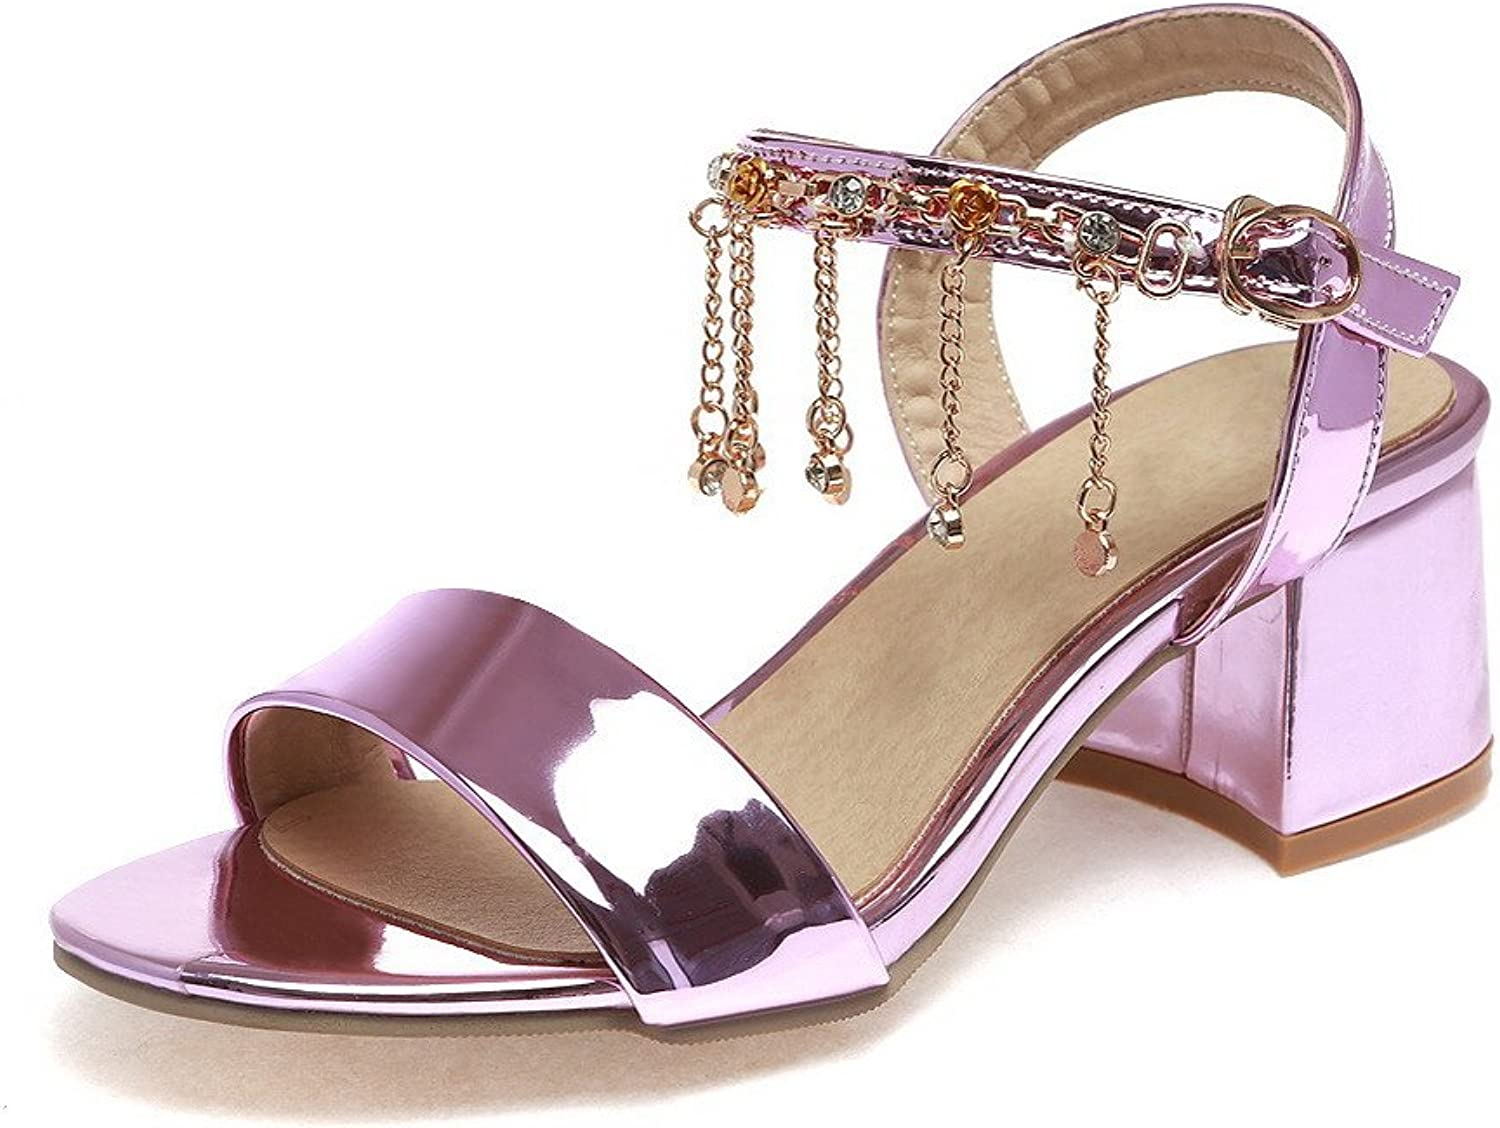 AmoonyFashion Women's Open Toe Kitten Heels Patent Leather Solid Buckle Sandals